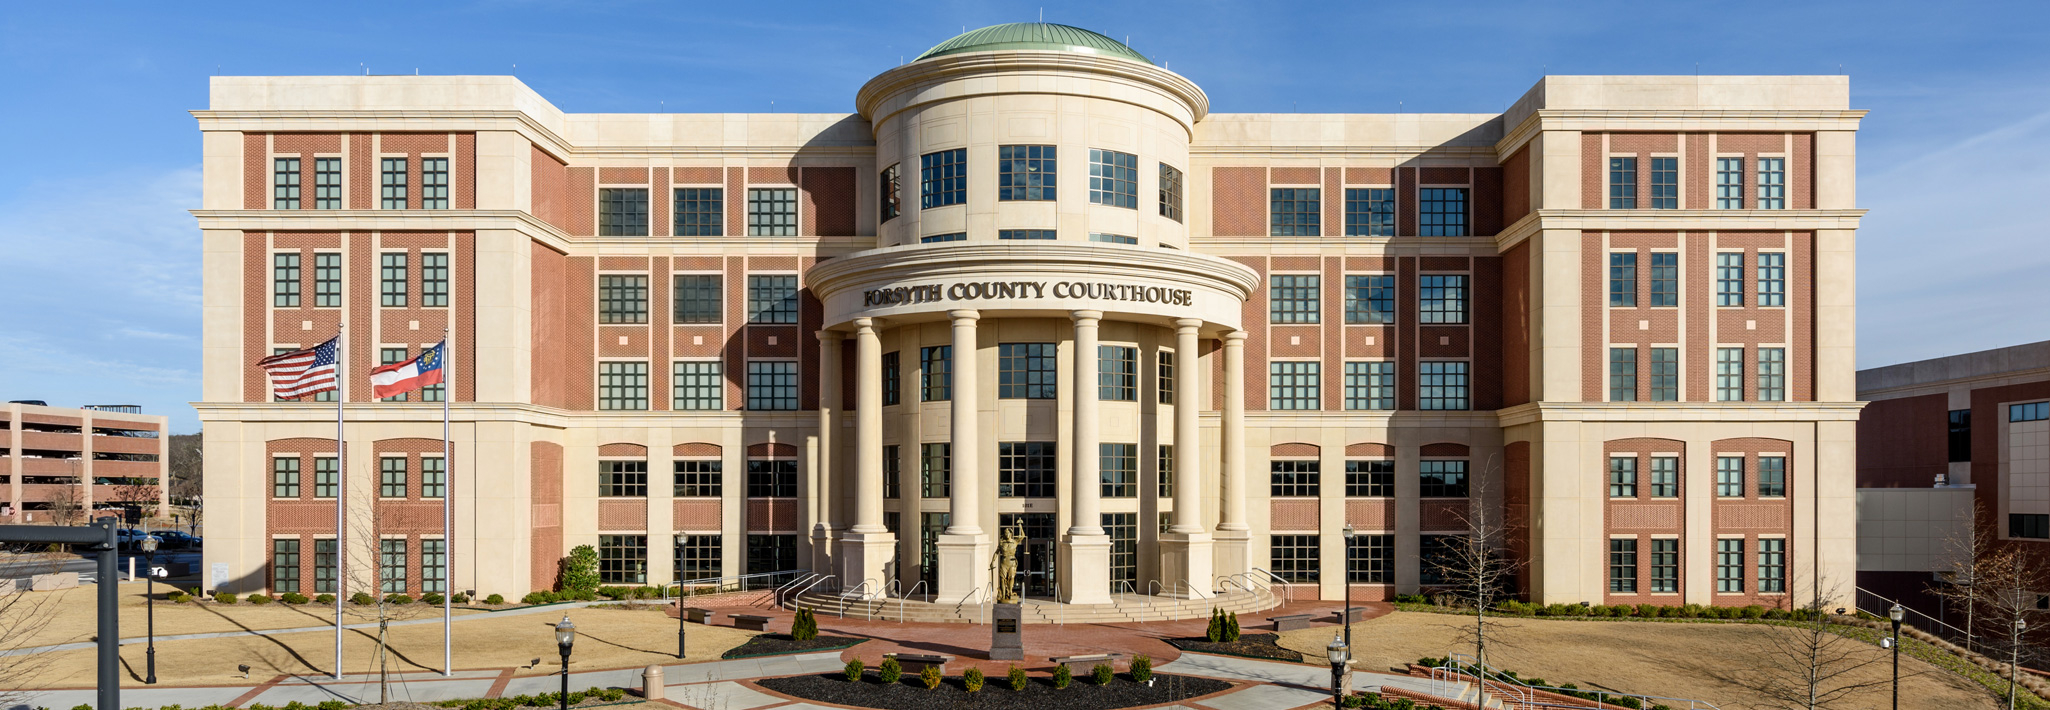 Home Throughout Calendars District And Superior Court Nc